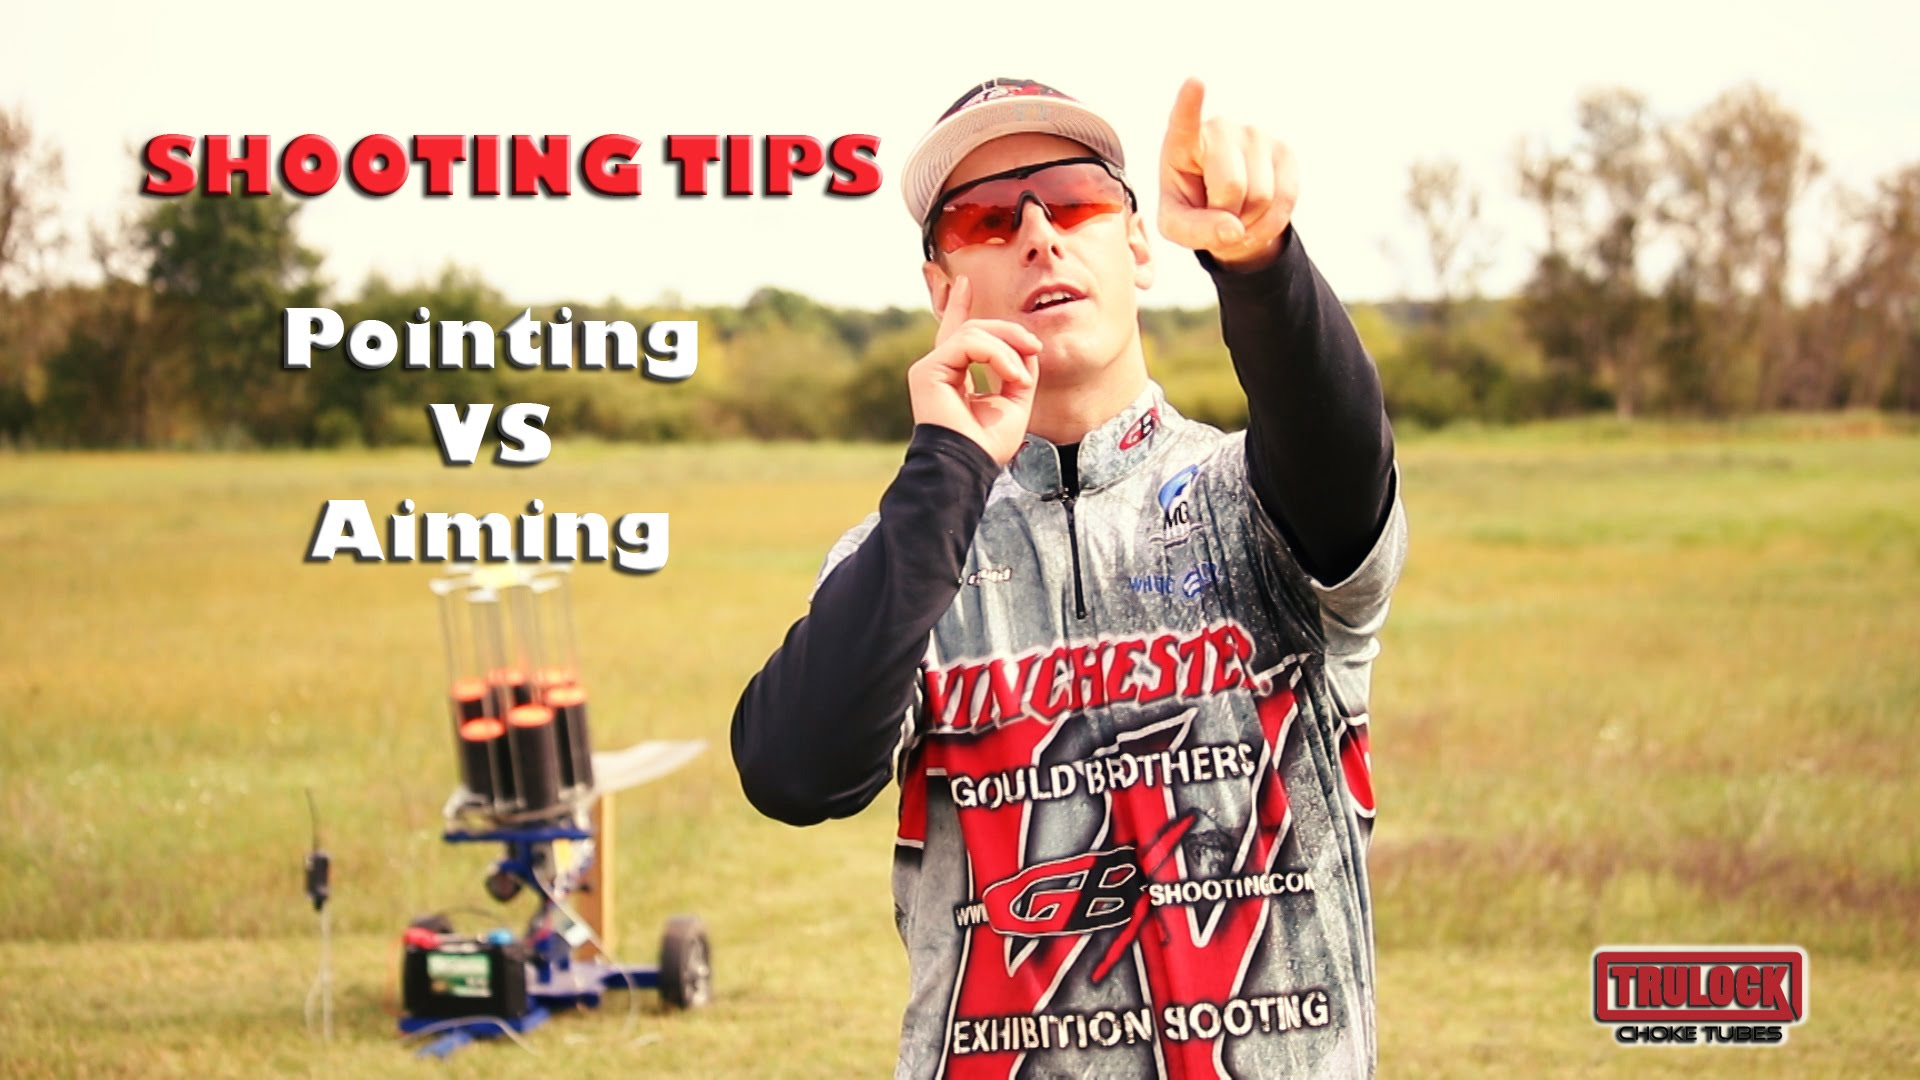 Tips for Better Wing & Clay Shooting - Pointing VS Aiming